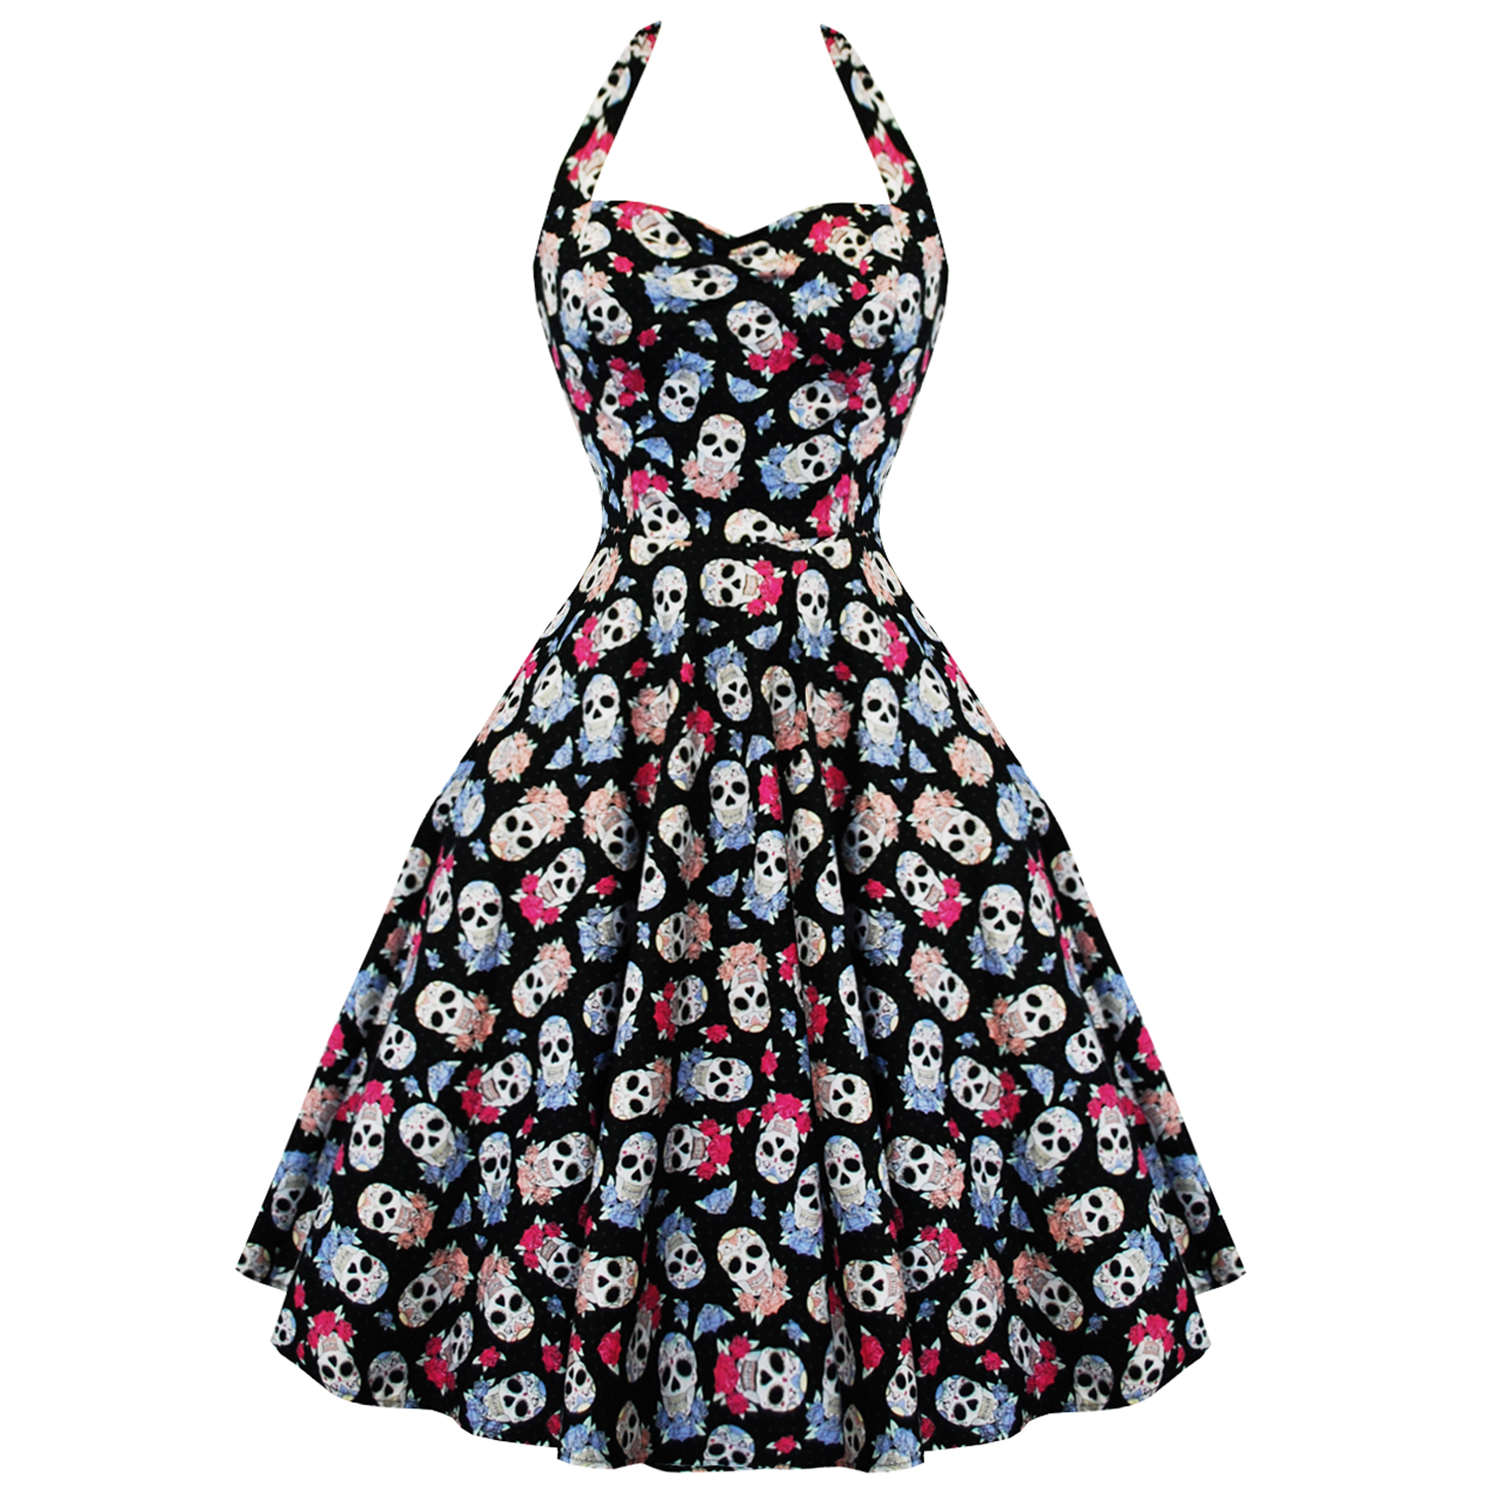 Hell-Bunny-Muertos-Sugar-Skulls-Rockabilly-Vintage-50S-Style-Party-Prom-Dress